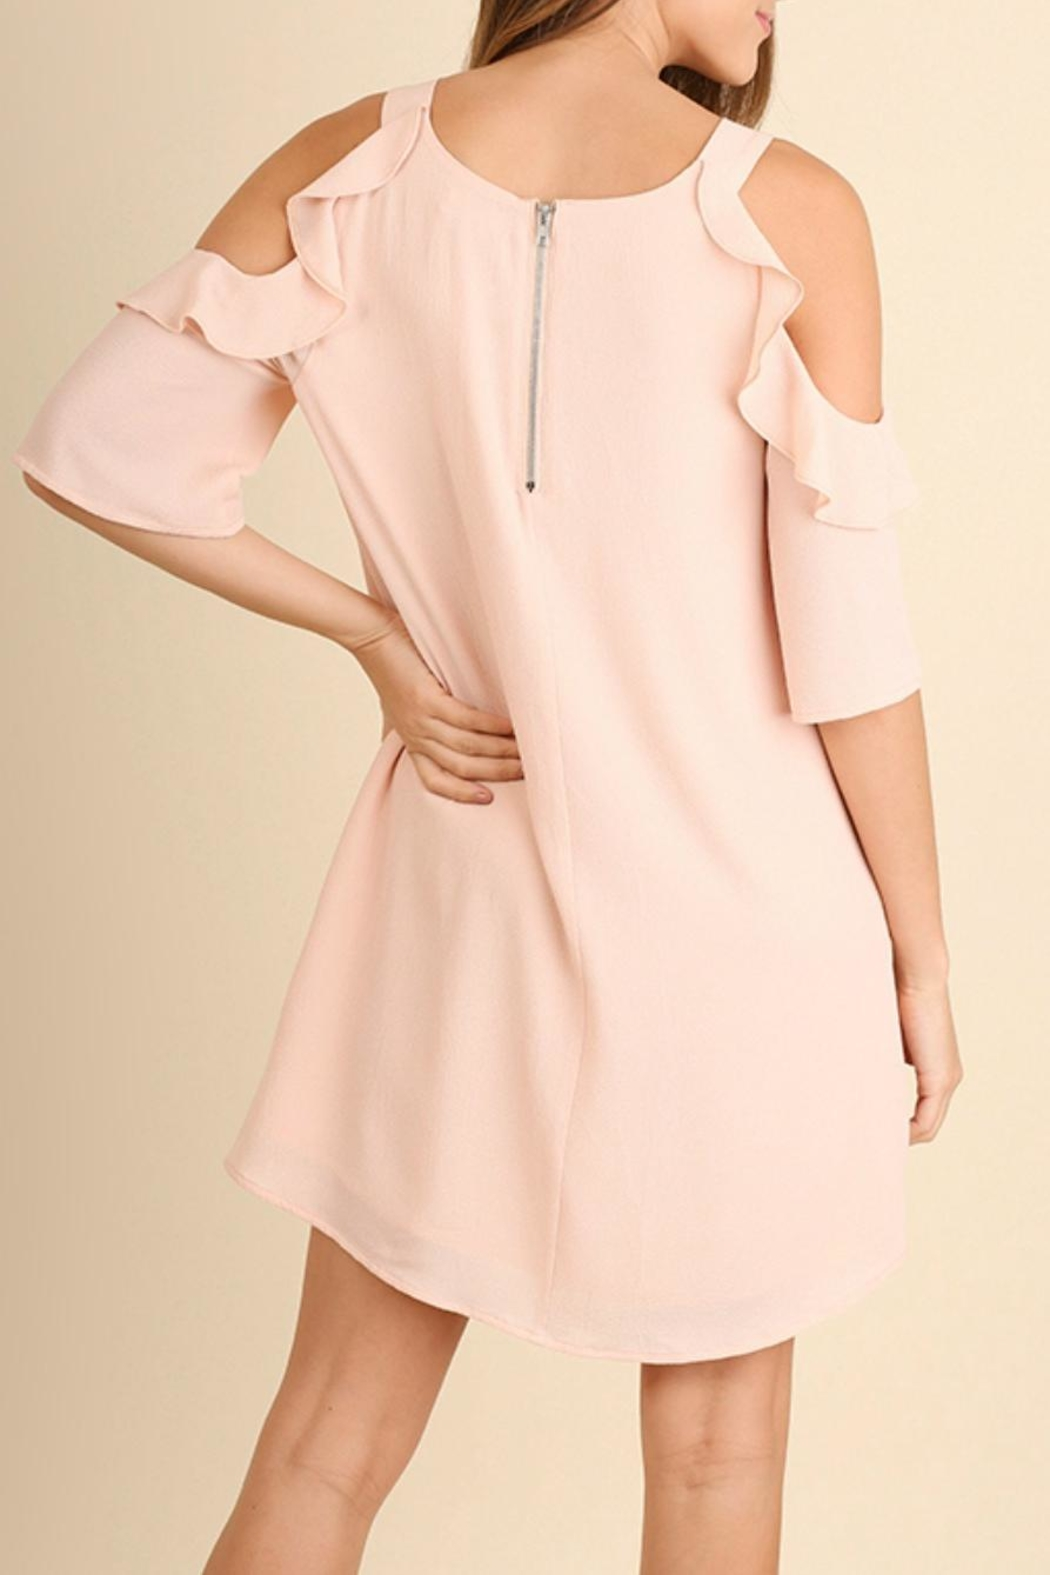 Umgee USA Peachy Keen Dress - Side Cropped Image